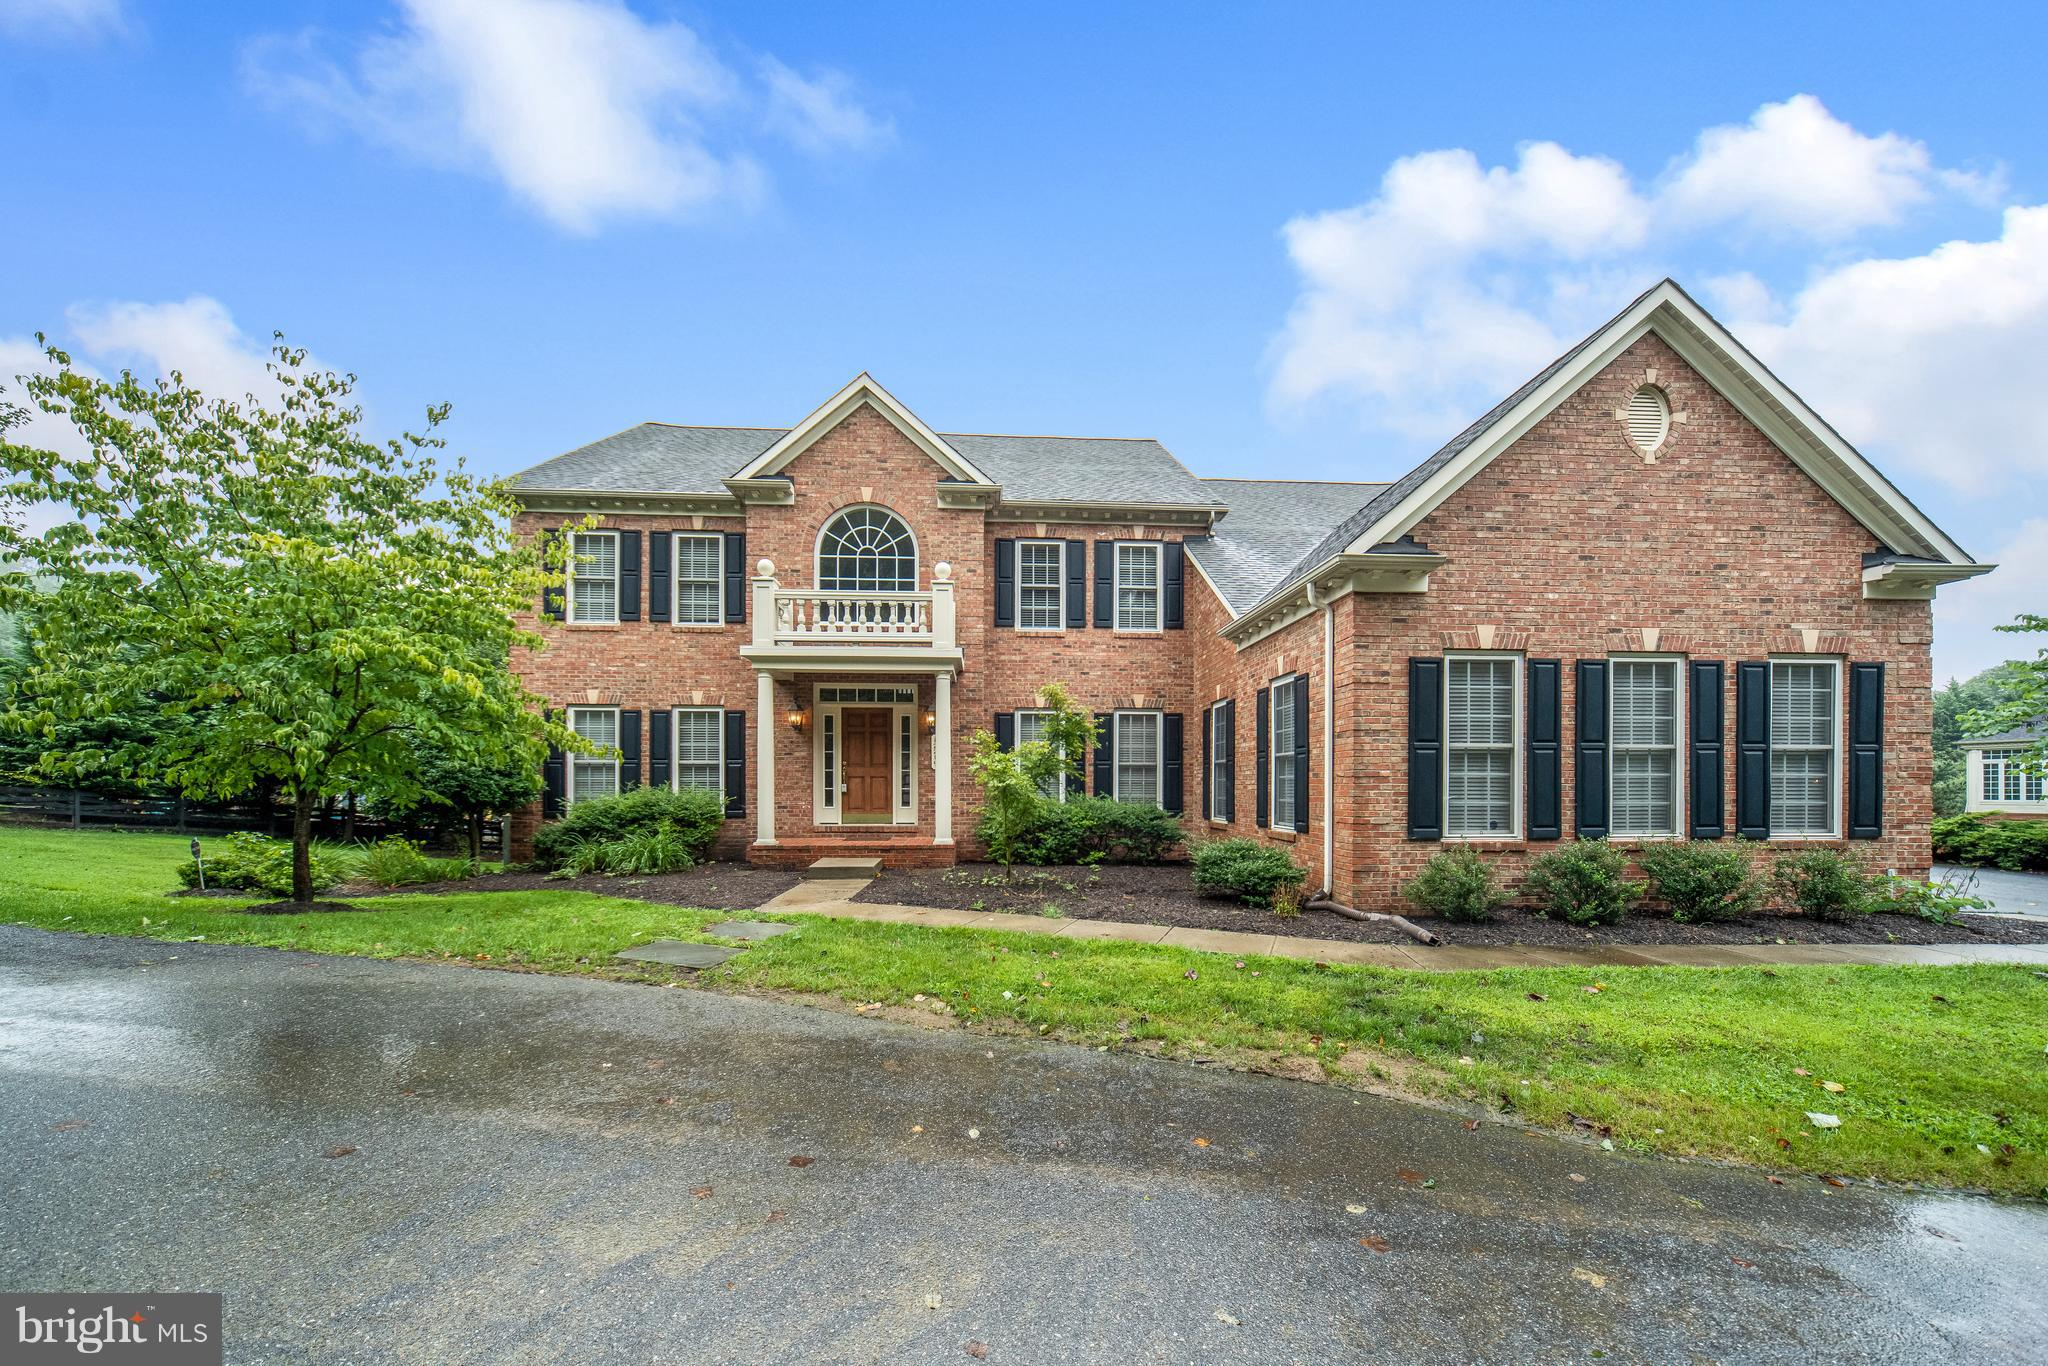 12219 GARRISON FOREST ROAD, OWINGS MILLS, MD 21117